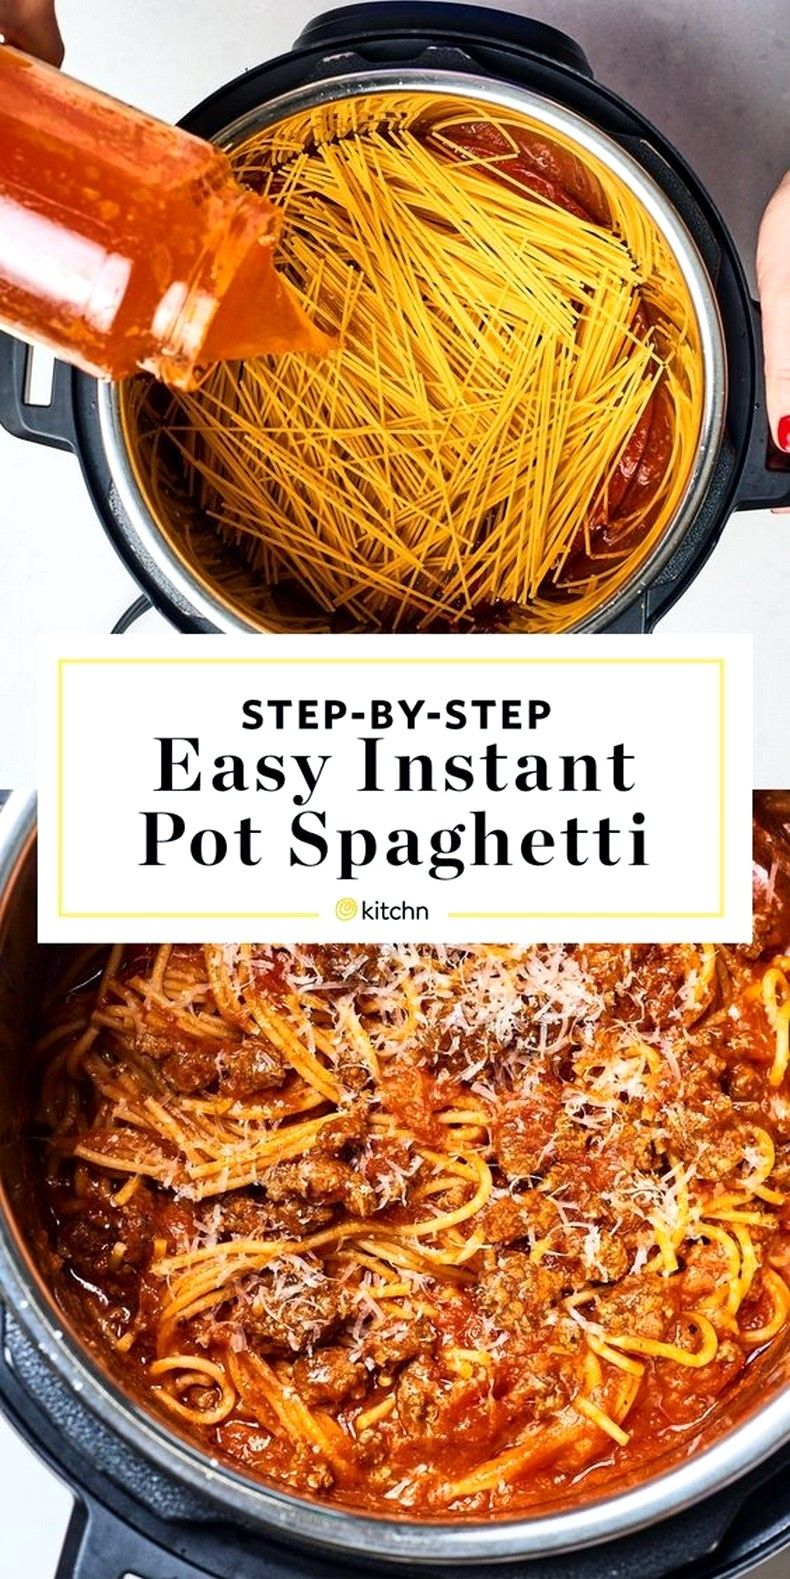 How To Make the Best Instant Pot Spaghetti #instantpotrecipesforbeginners